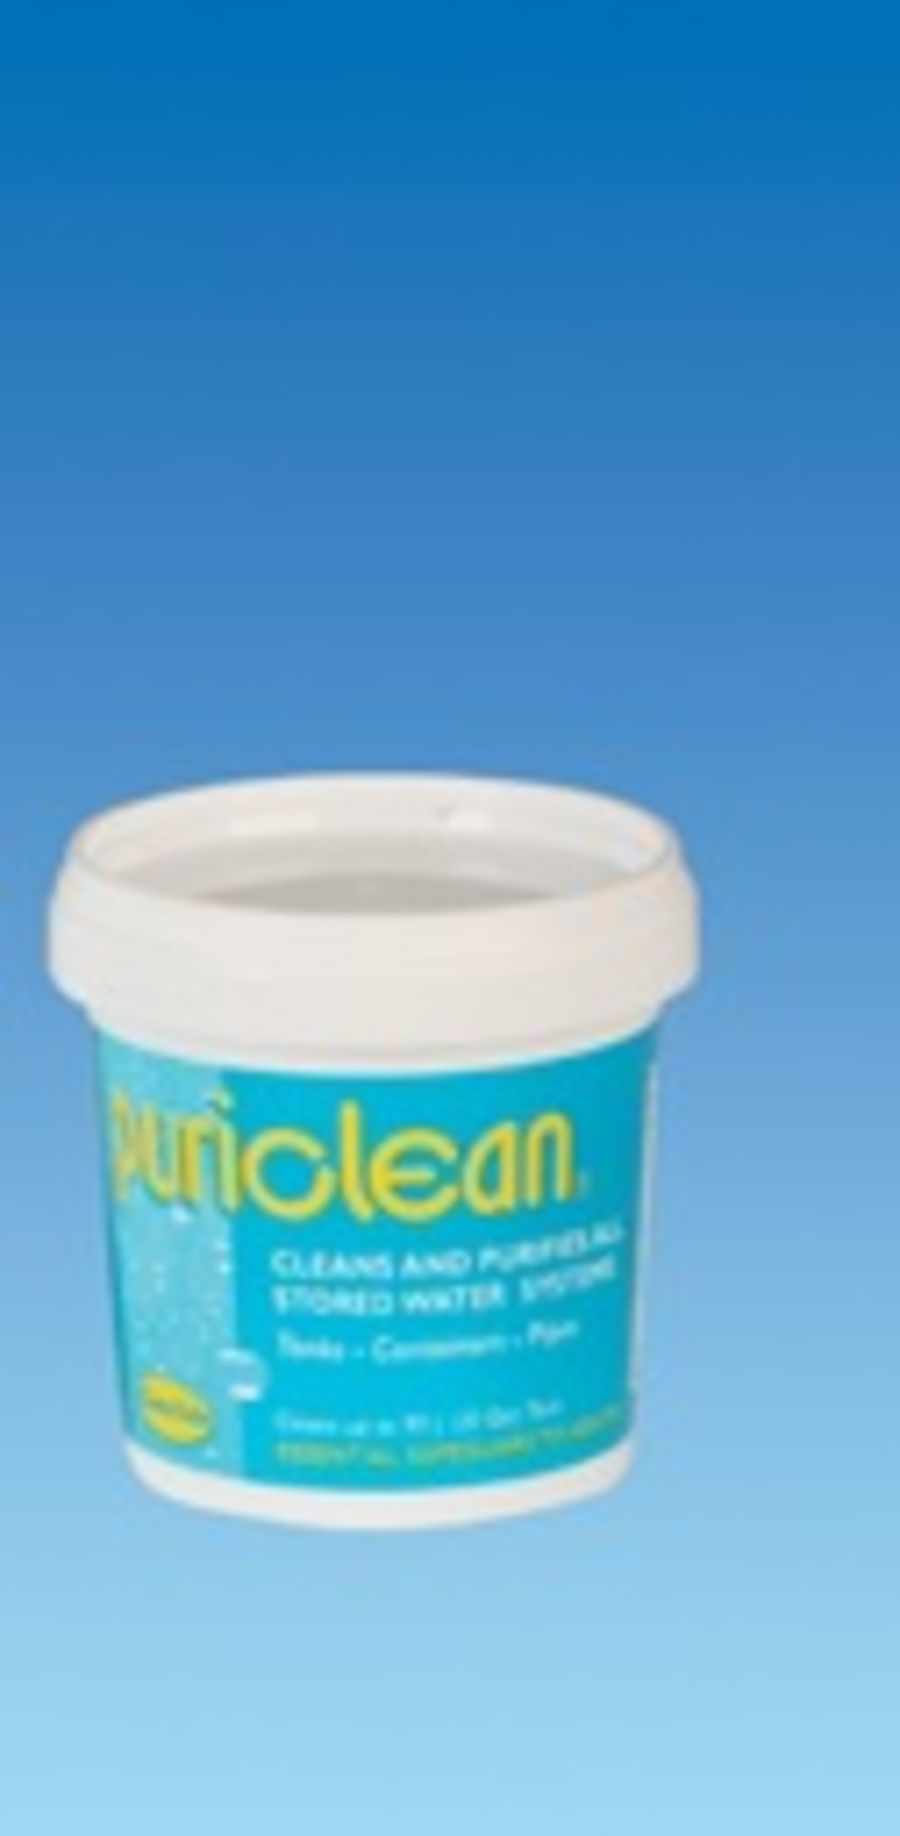 Puriclean - 100g